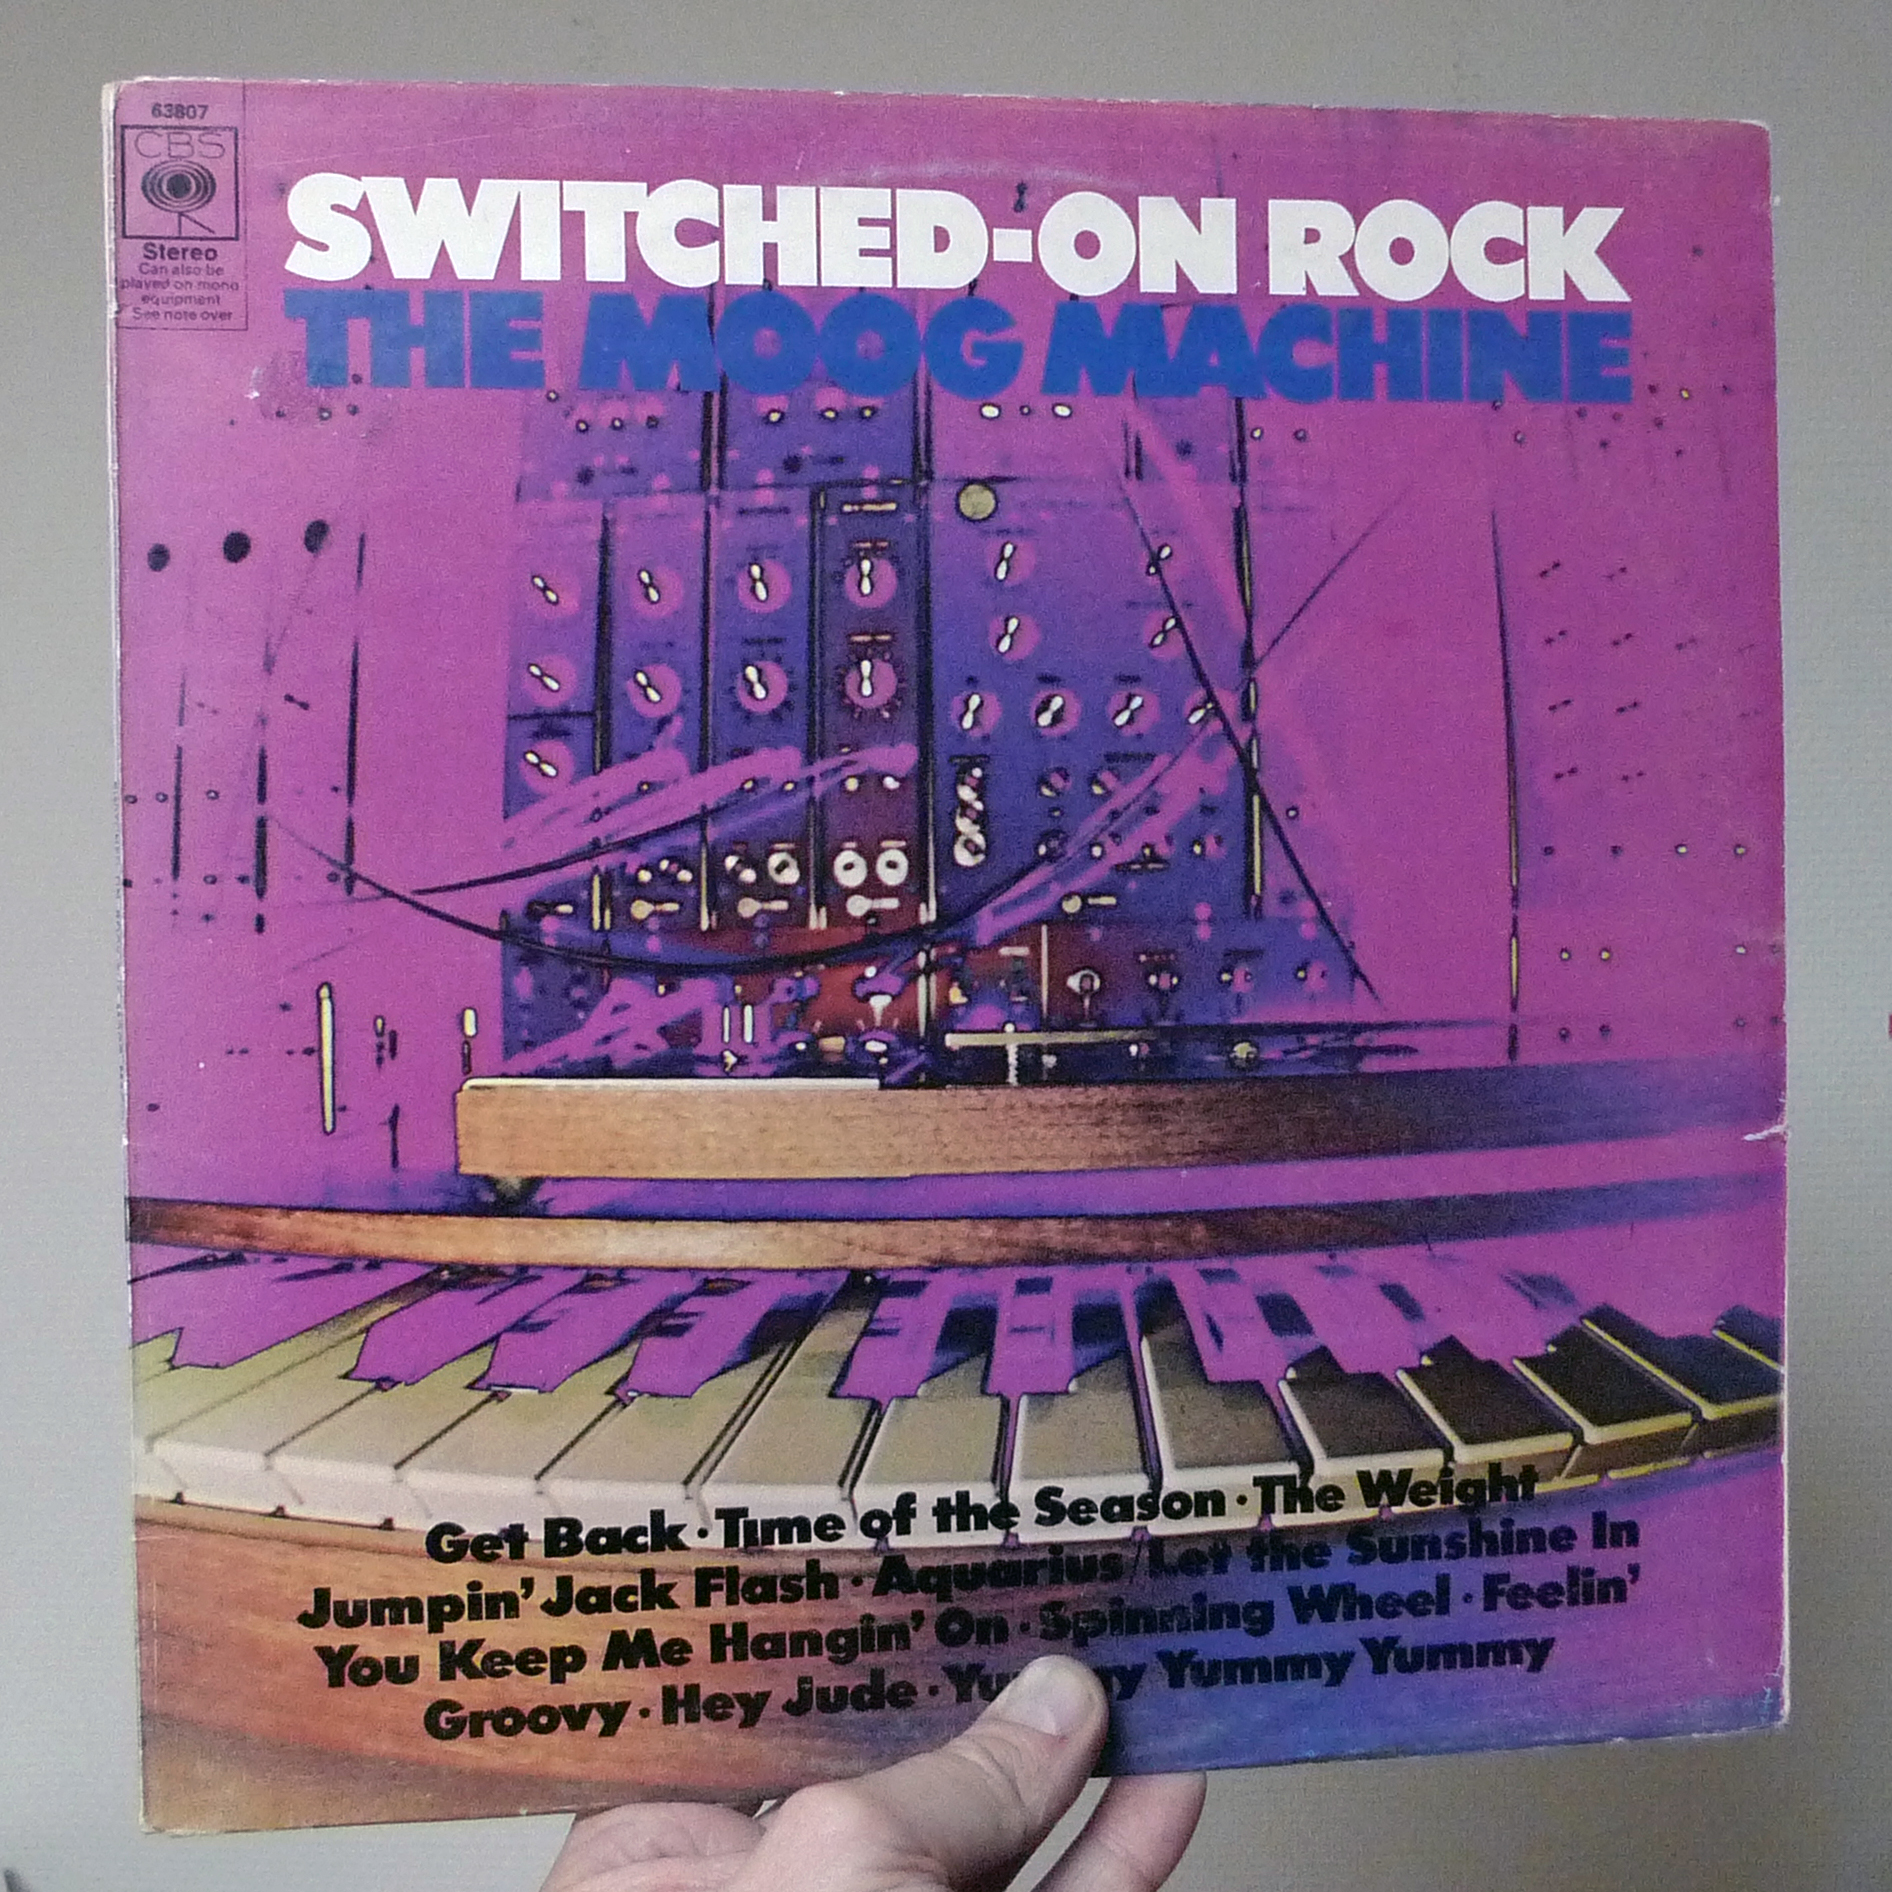 dj50s ep126 sleeve sitched on rock